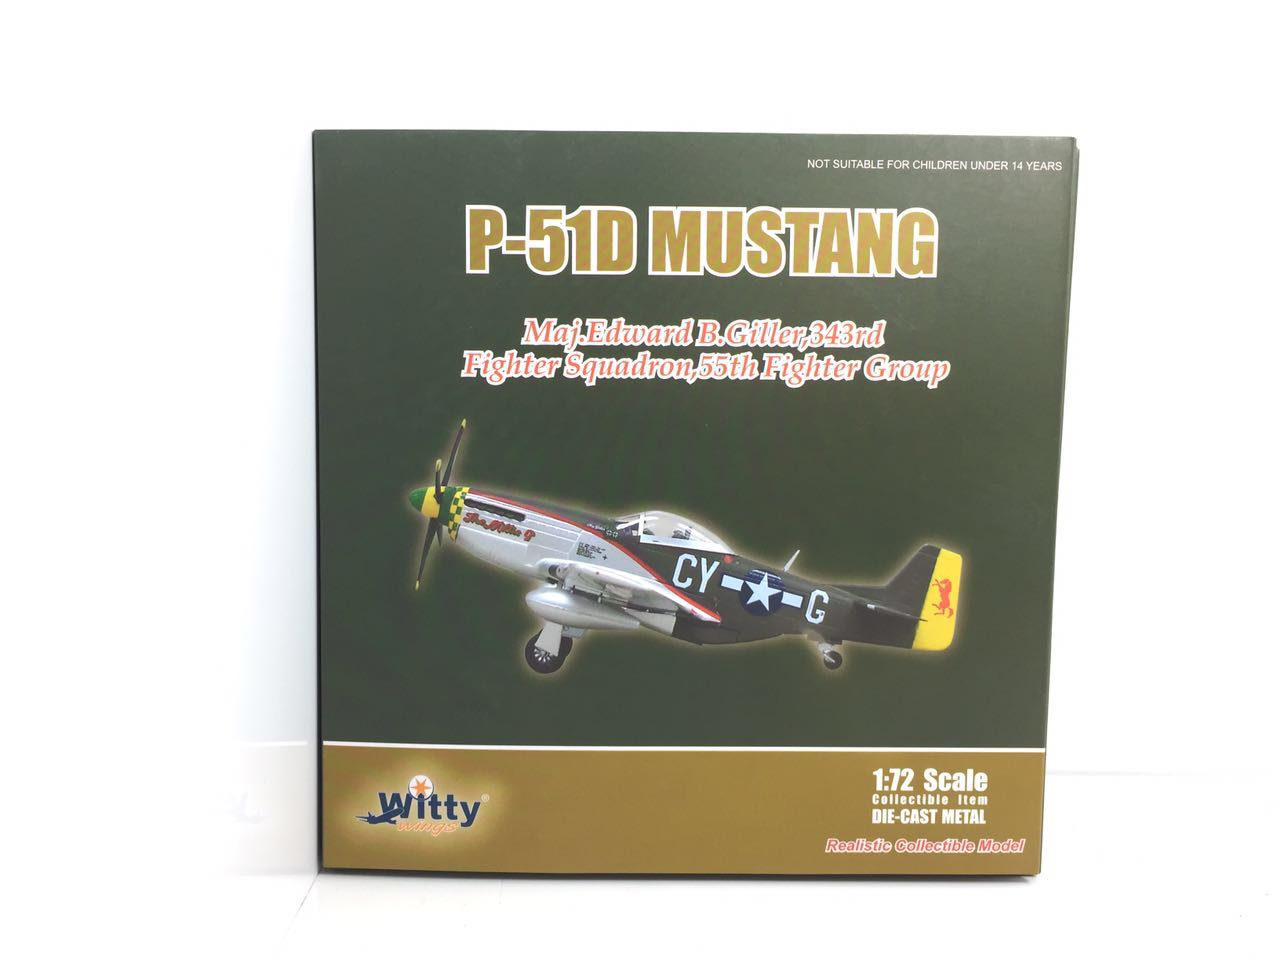 004-025 P-51D Witty fighter aircraft, the United States Air Force 1:72 Finished Model